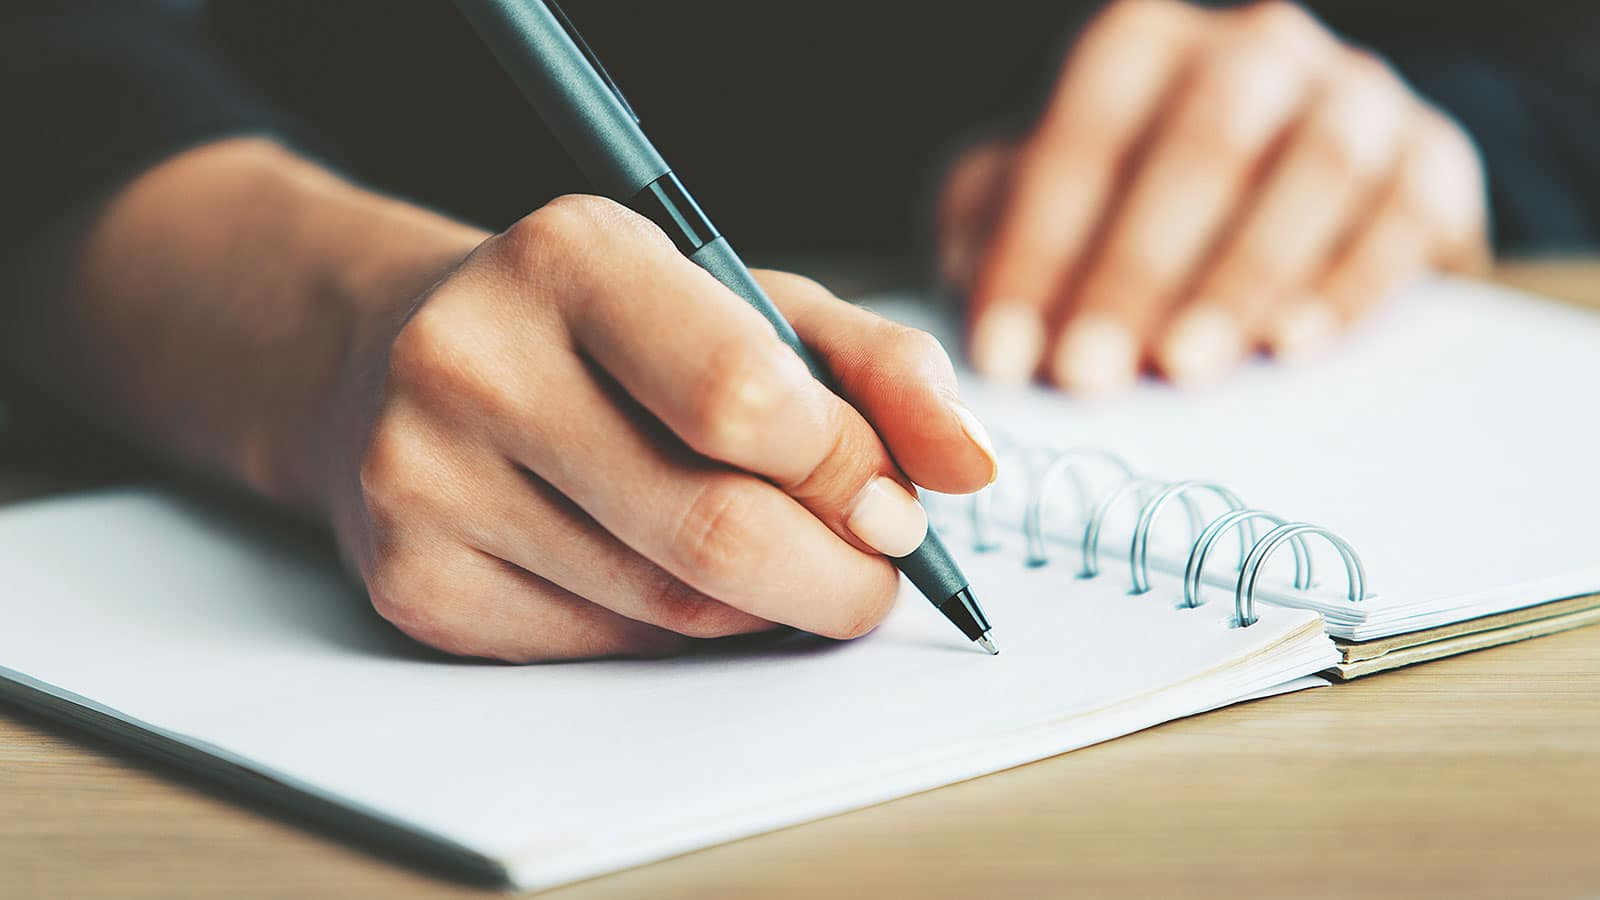 Guide to Finding the Best Writing Tutor - The Easy & Fail-proof Way